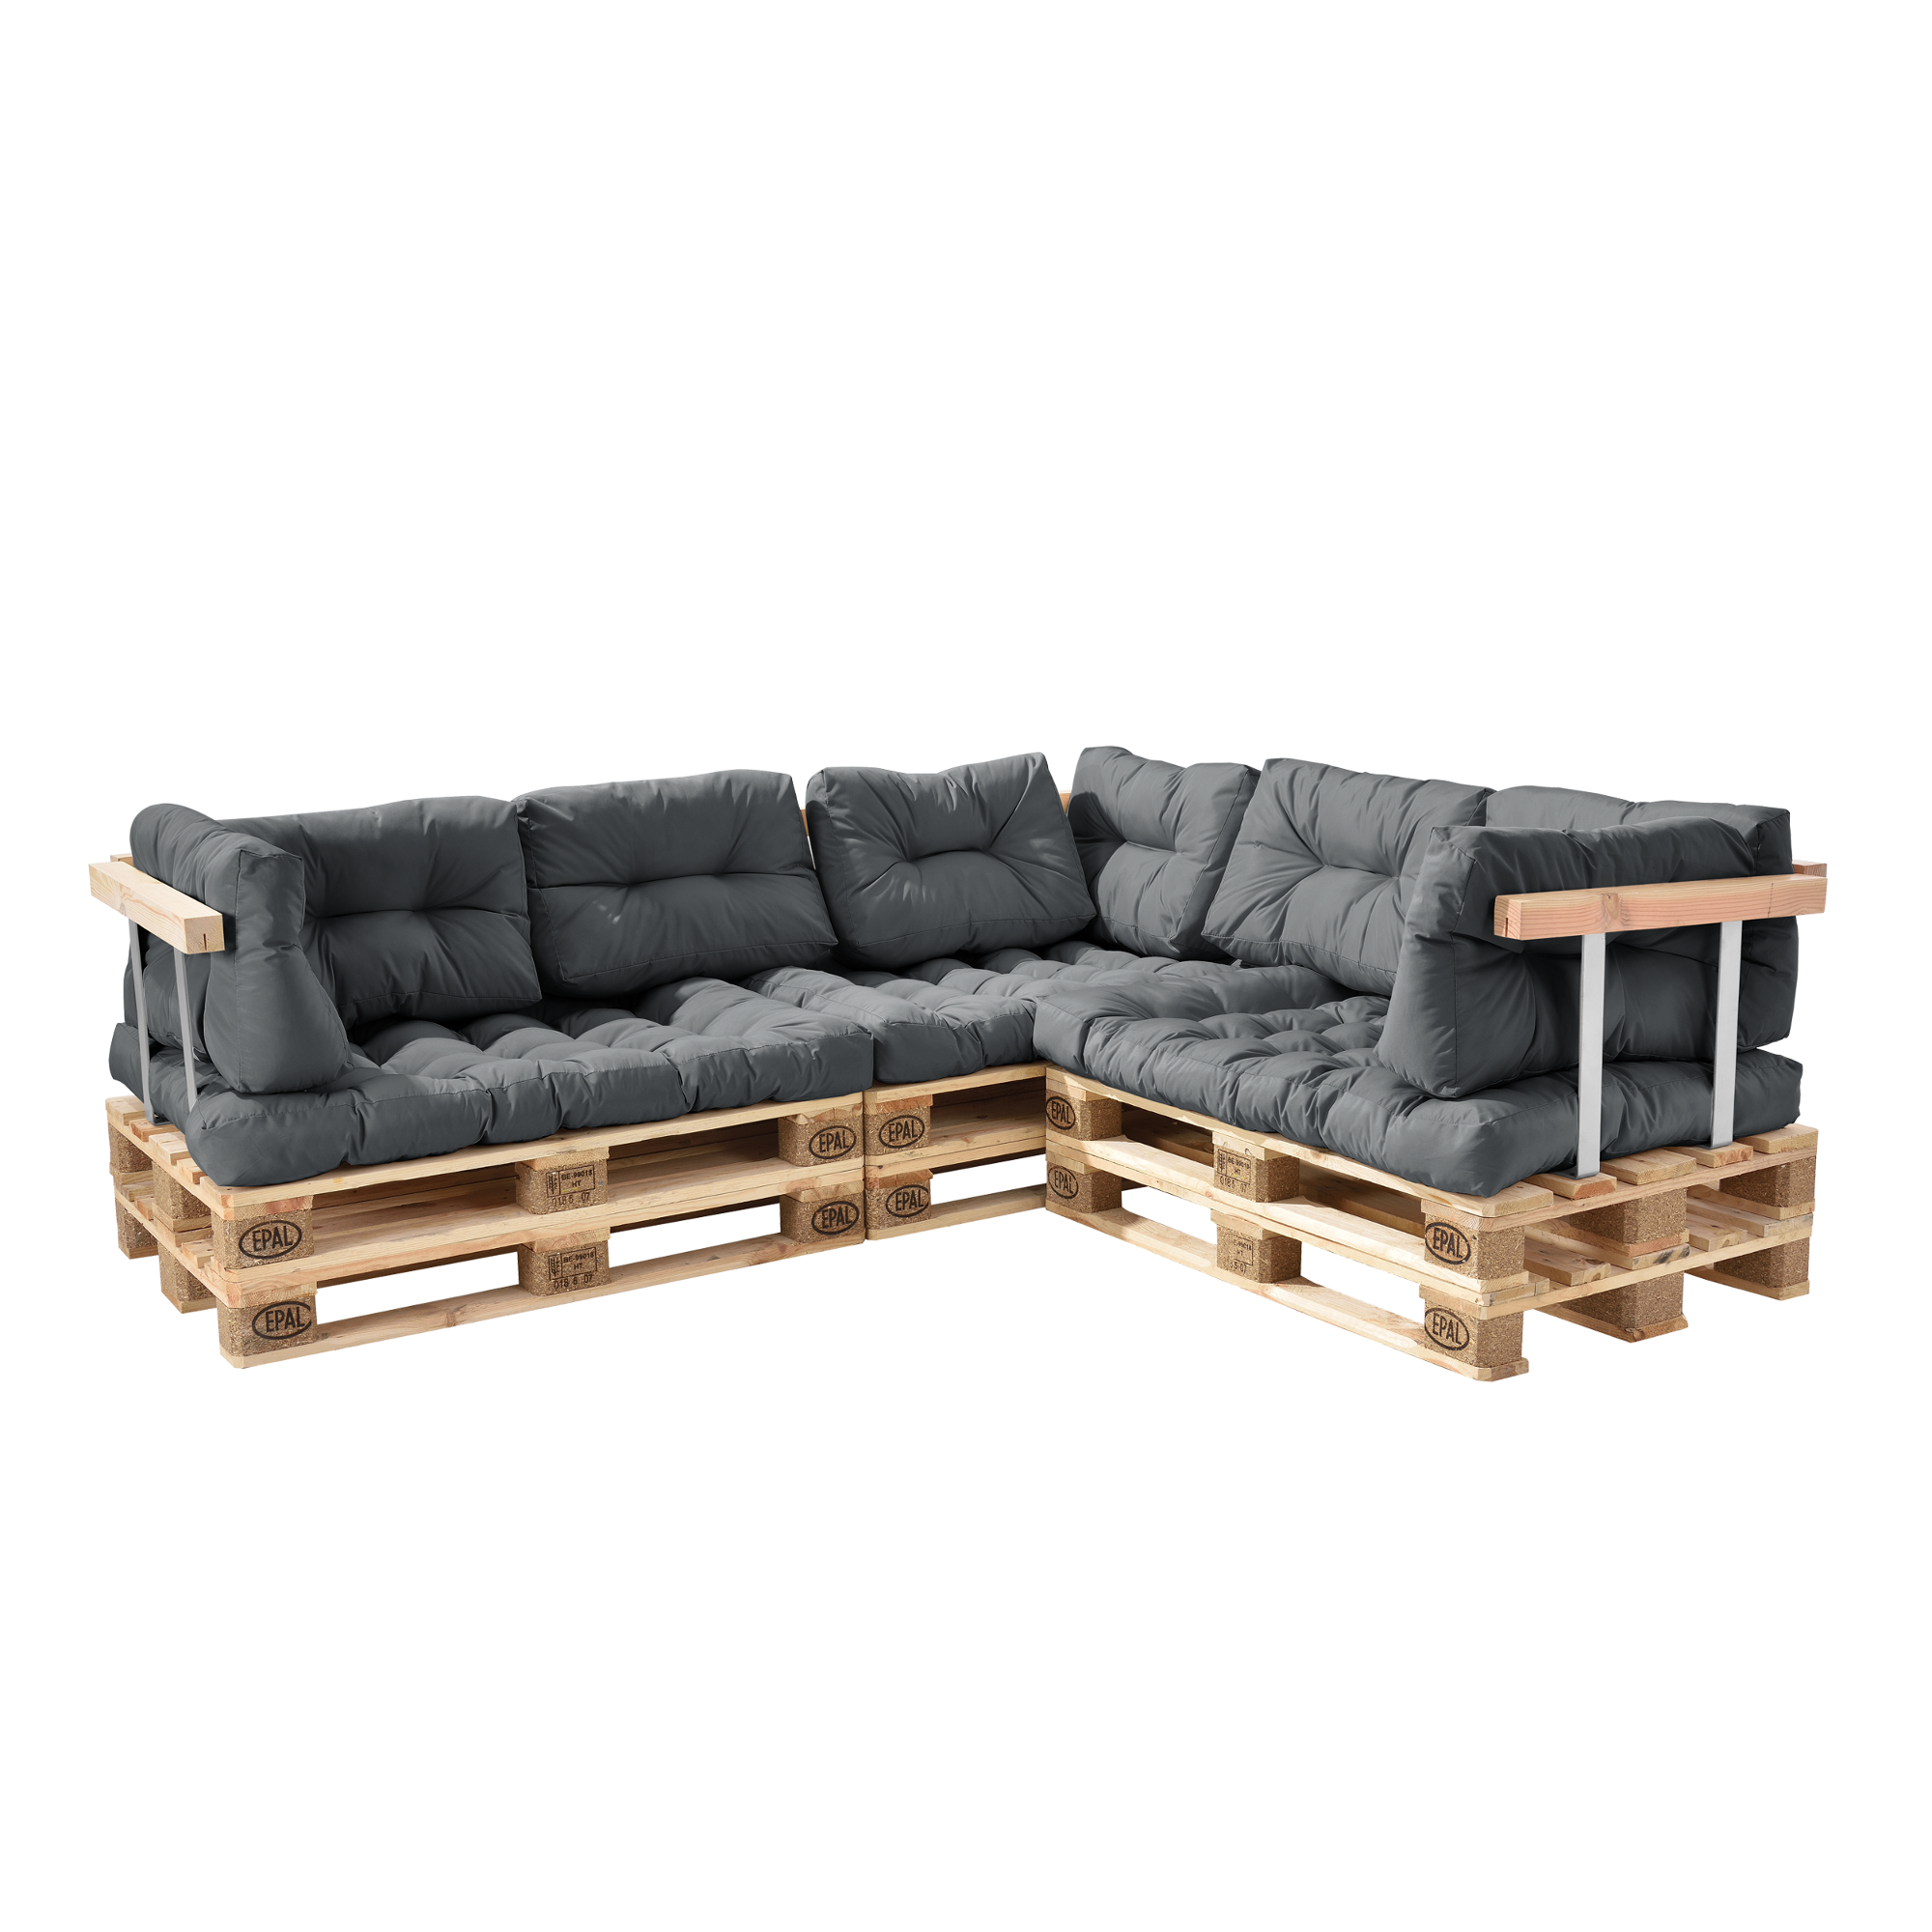 euro paletten sofa hellgrau ecksofa mit paletten. Black Bedroom Furniture Sets. Home Design Ideas